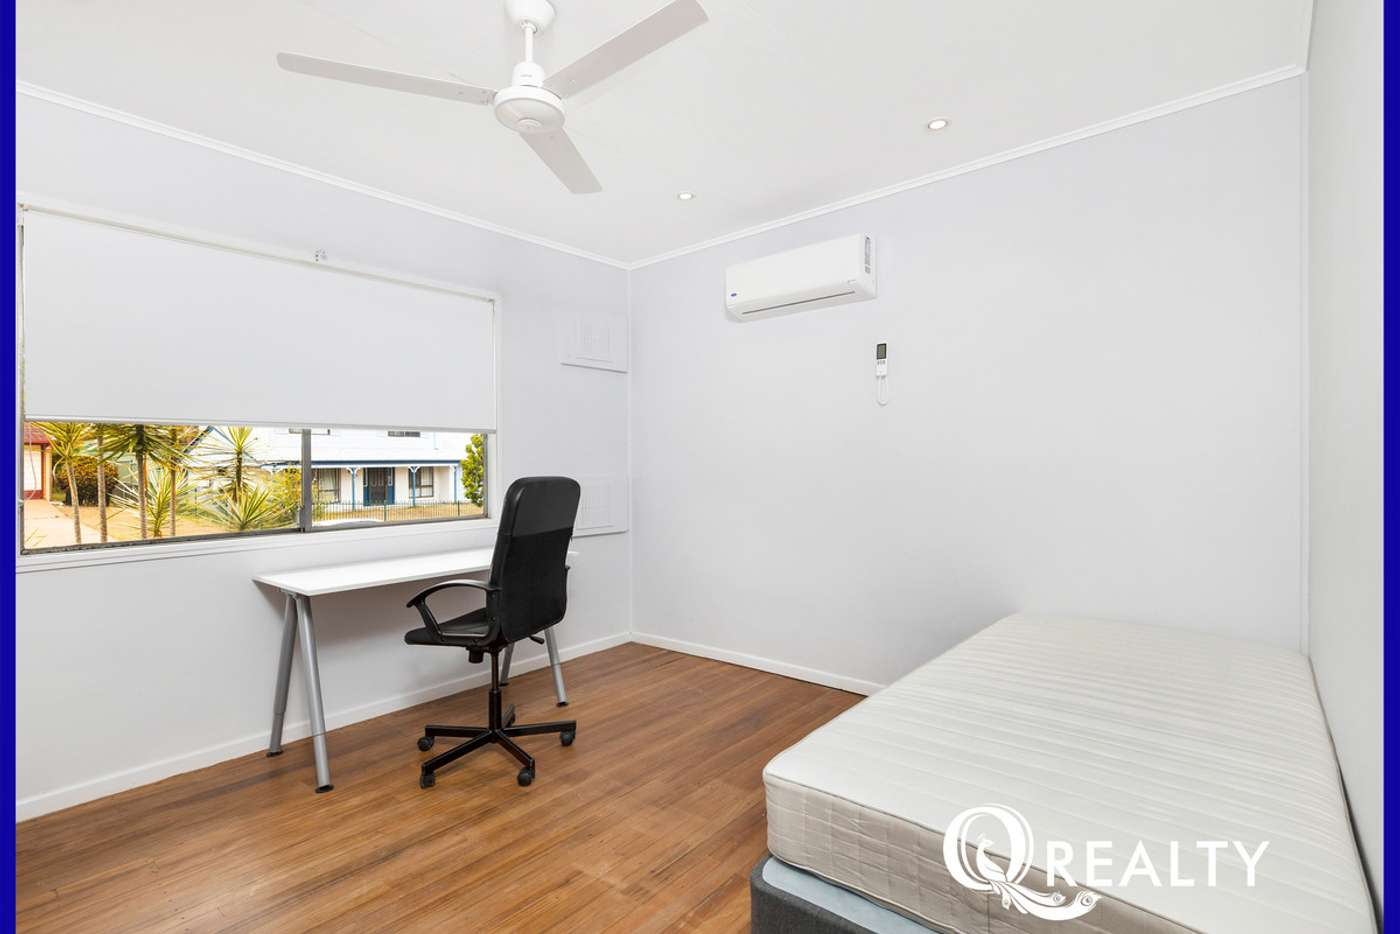 Sixth view of Homely house listing, 1 Coolgardie Street, Sunnybank Hills QLD 4109